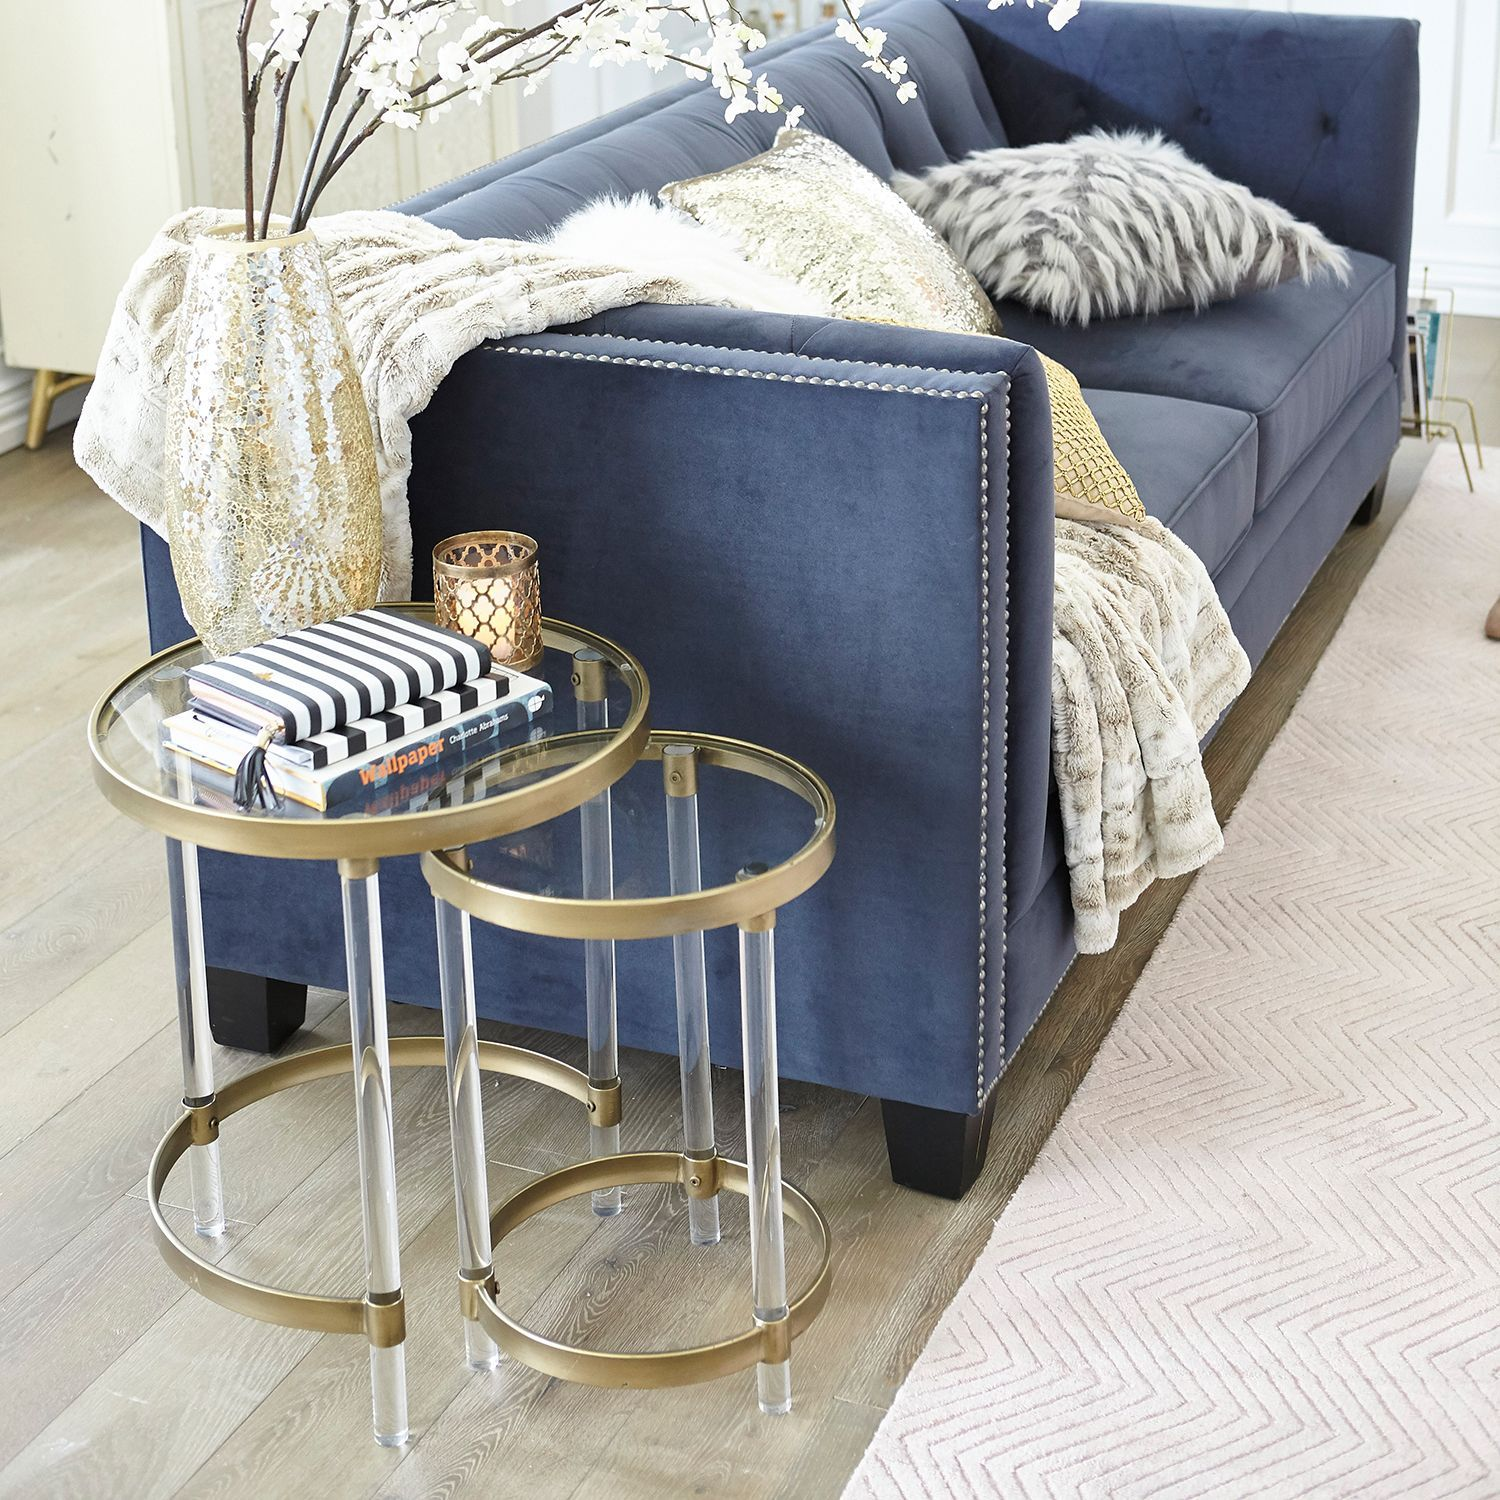 Acrylic Nesting Tables Set of Two | Pier 1 Imports ...